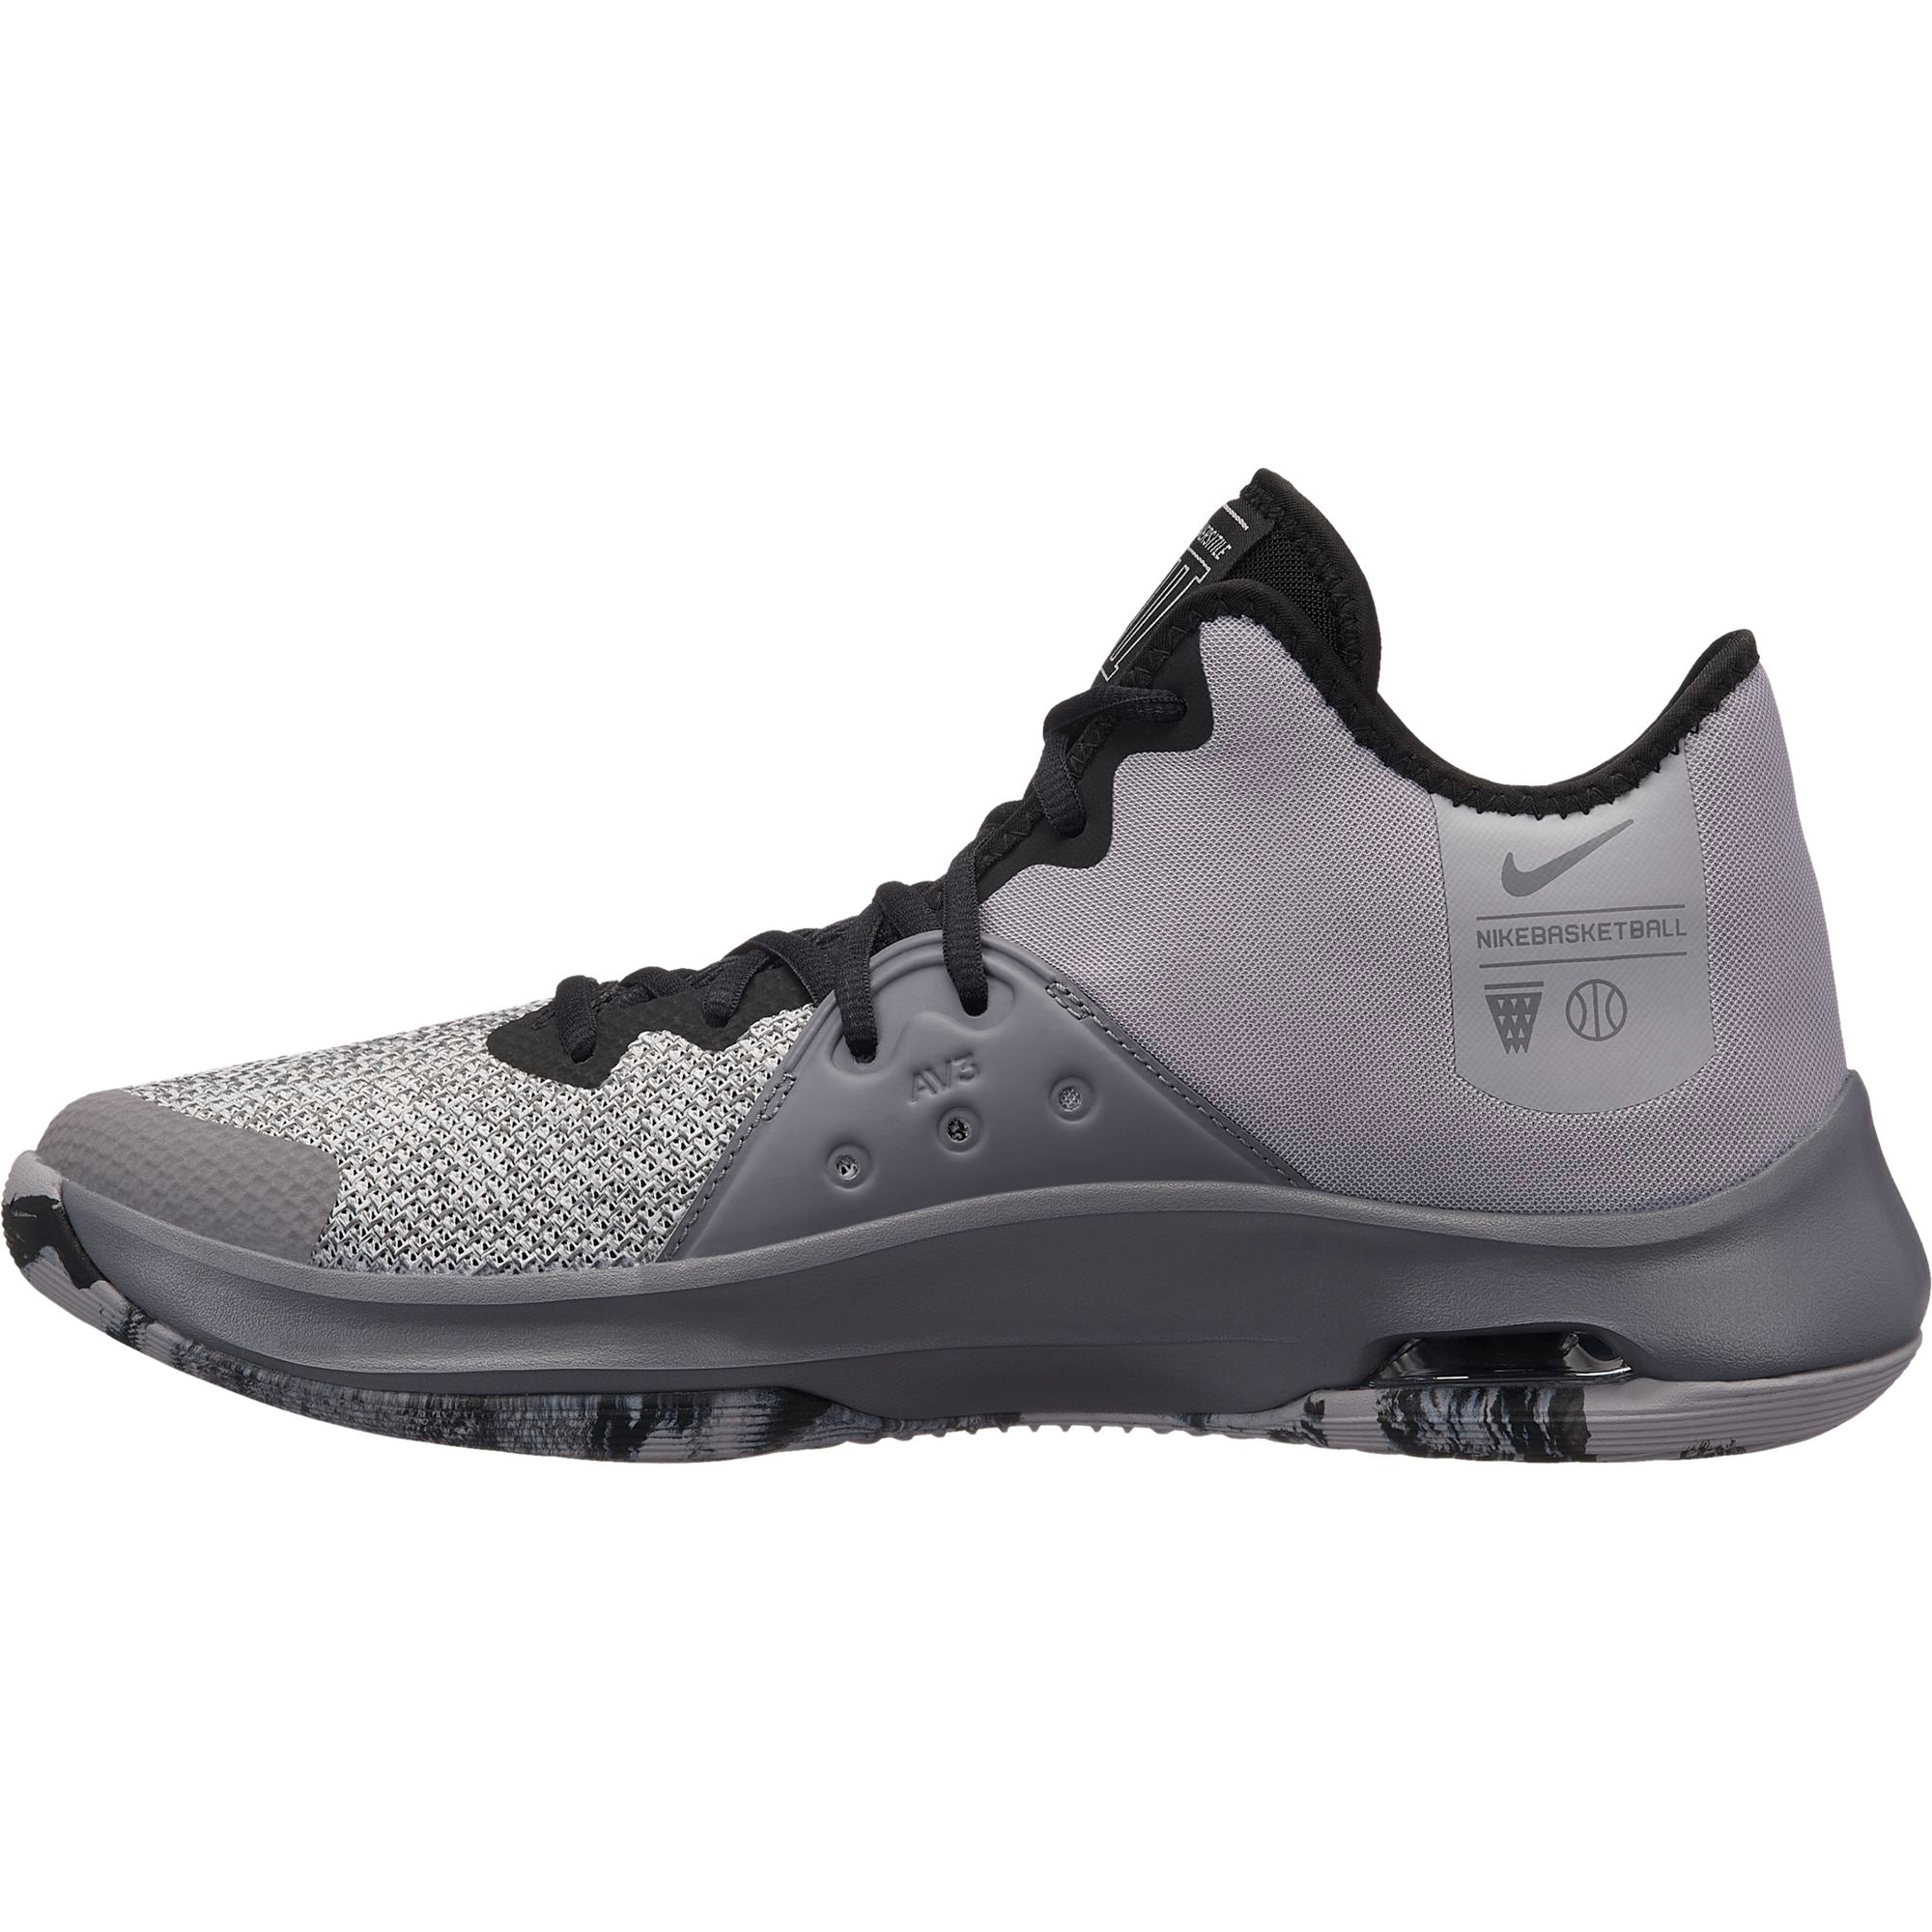 Nike Basketball Air Versitile III Boot/Shoe - Atmosphere Grey/Black/Gunsmoke/Vast Grey